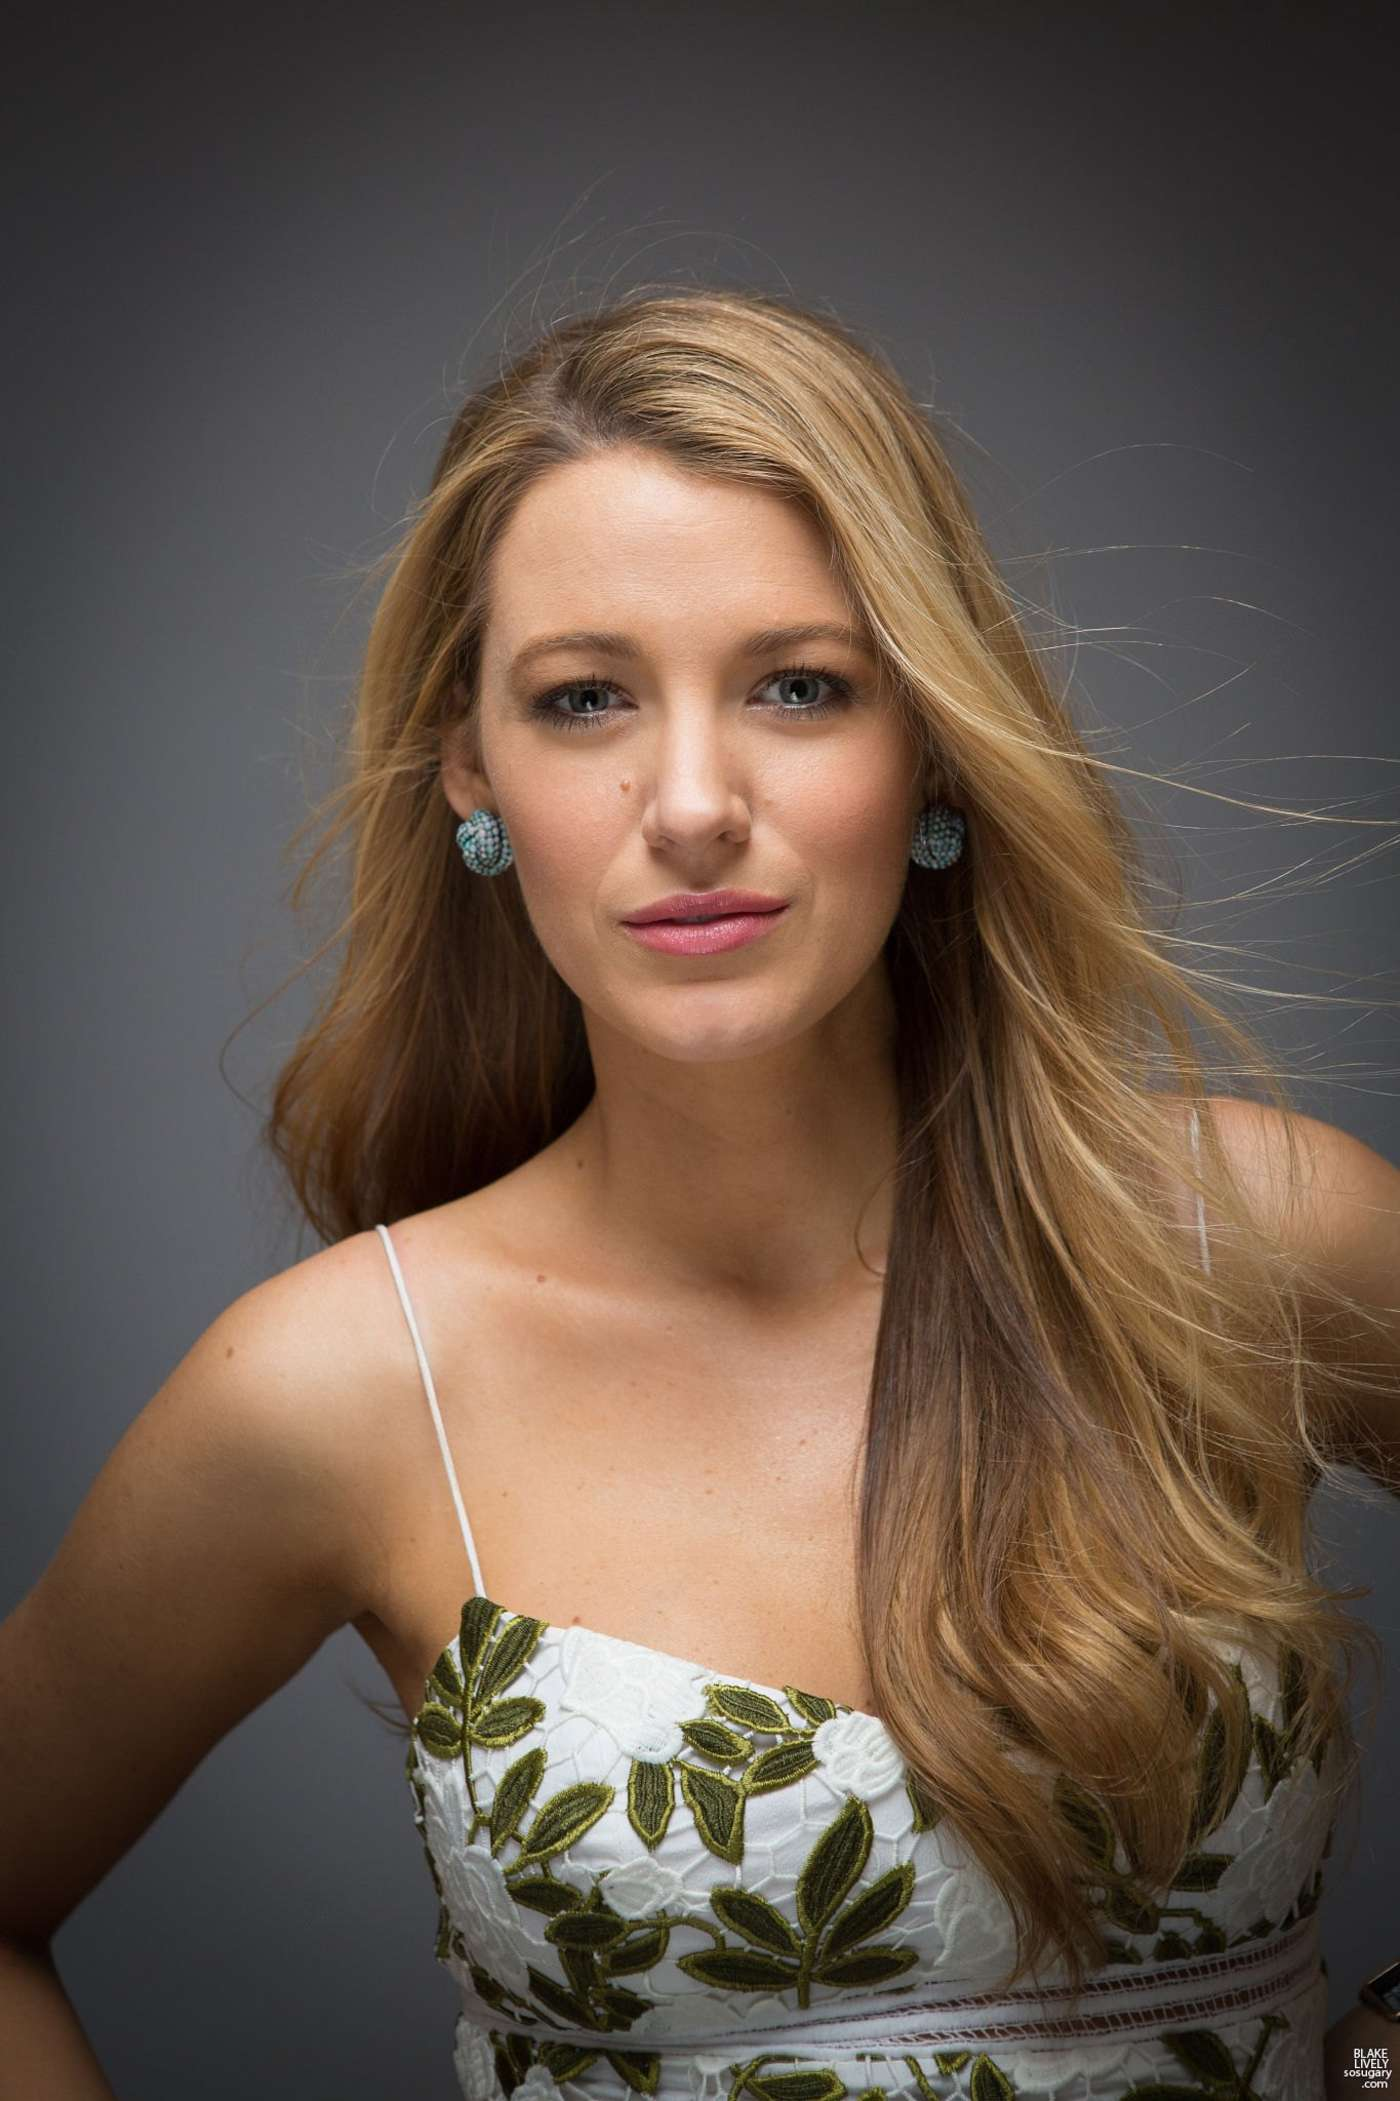 Blake Lively: The Holl...